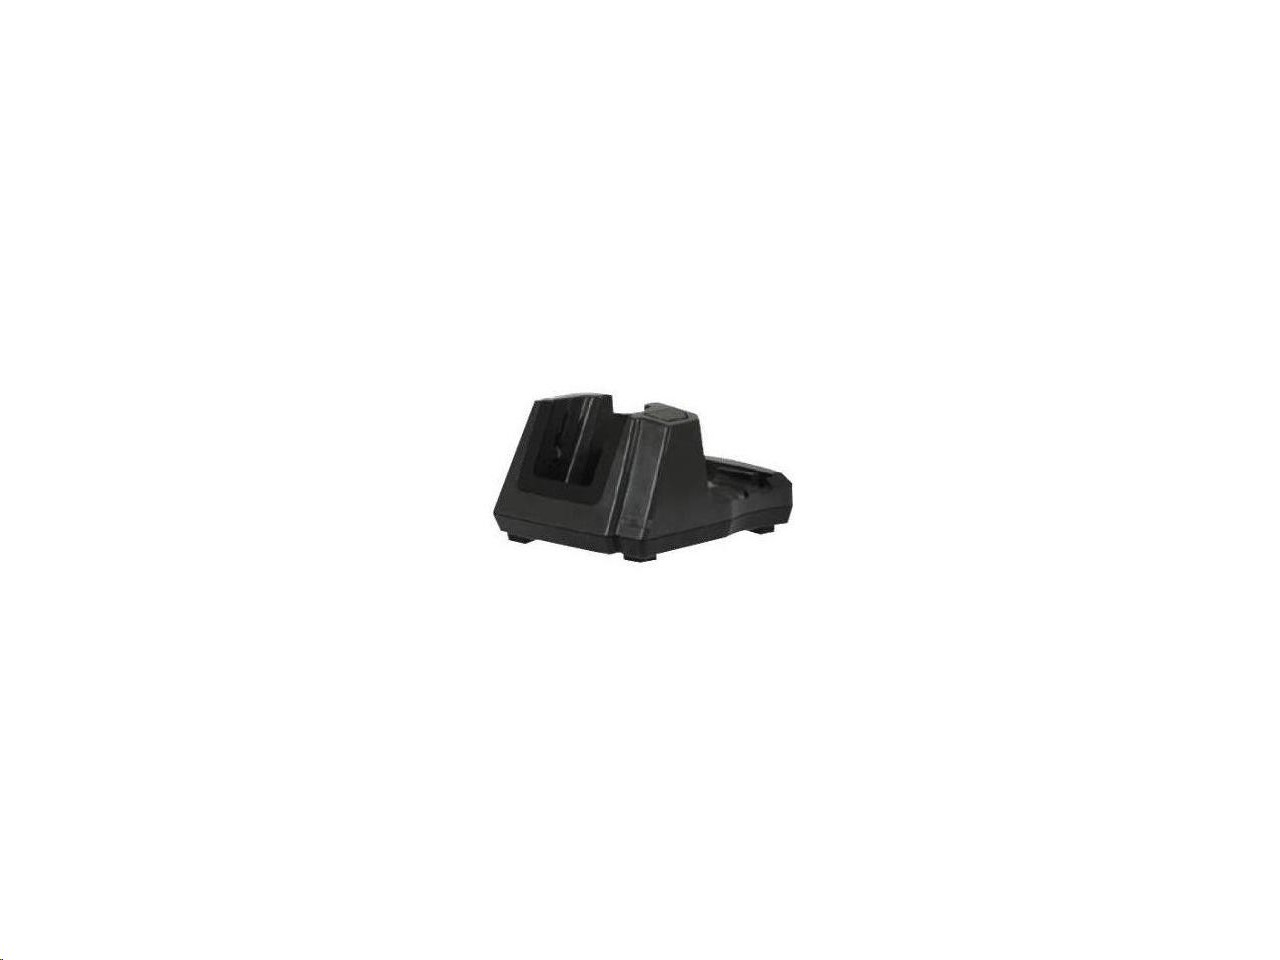 Zebra Single Slot Cradle For Zebra Omnii XT15 Scanners ST4003-WW